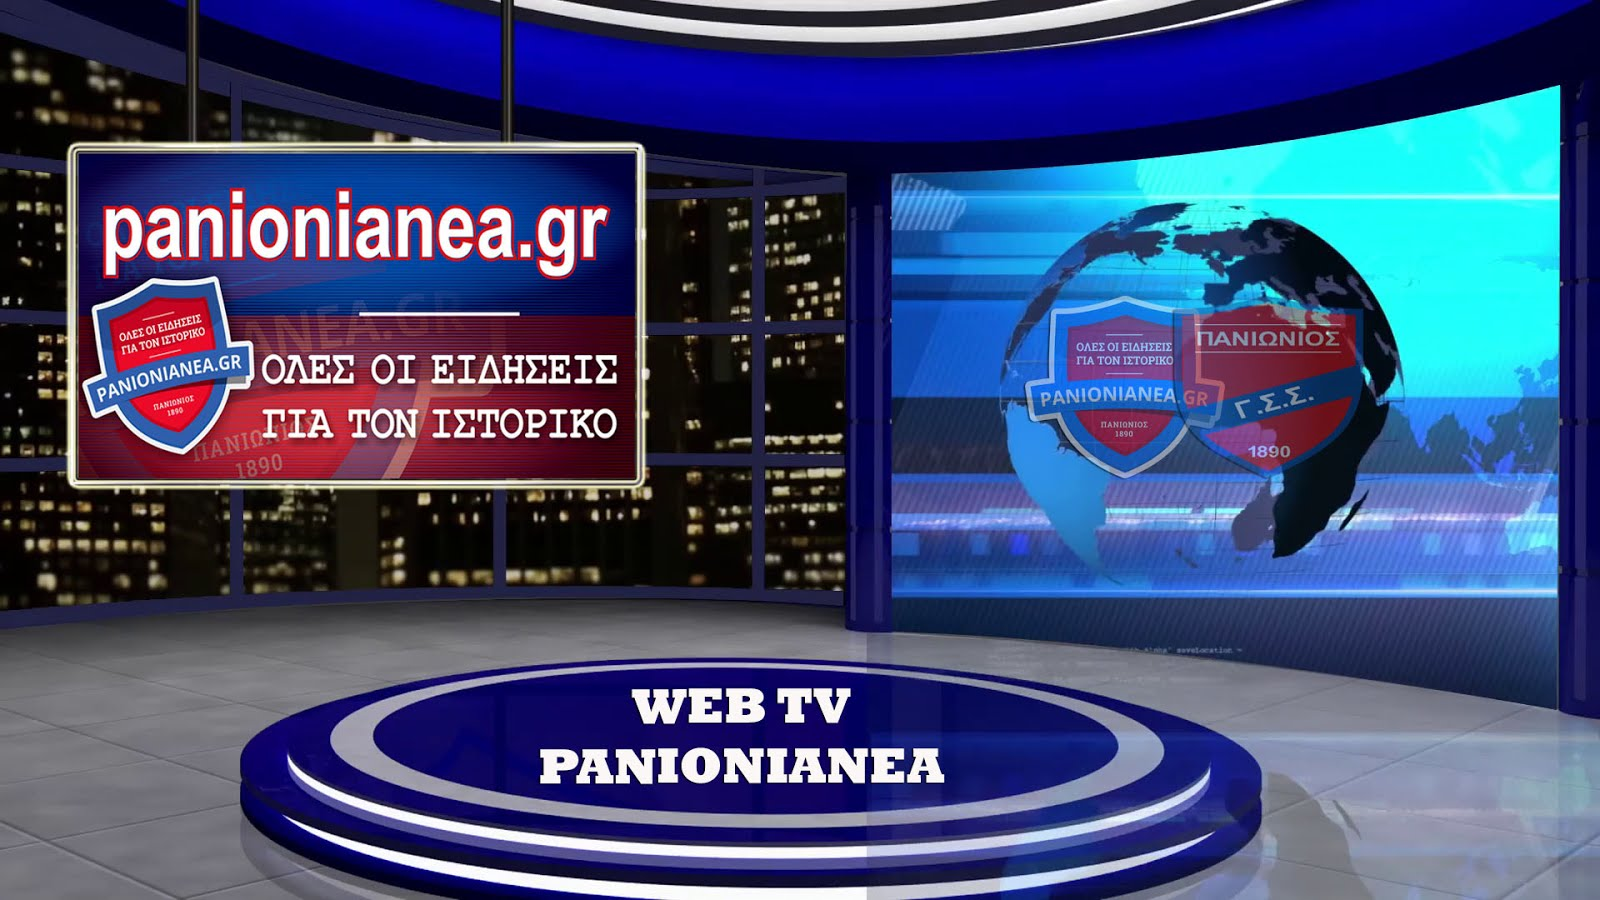 PANIONIANEA WEB TV